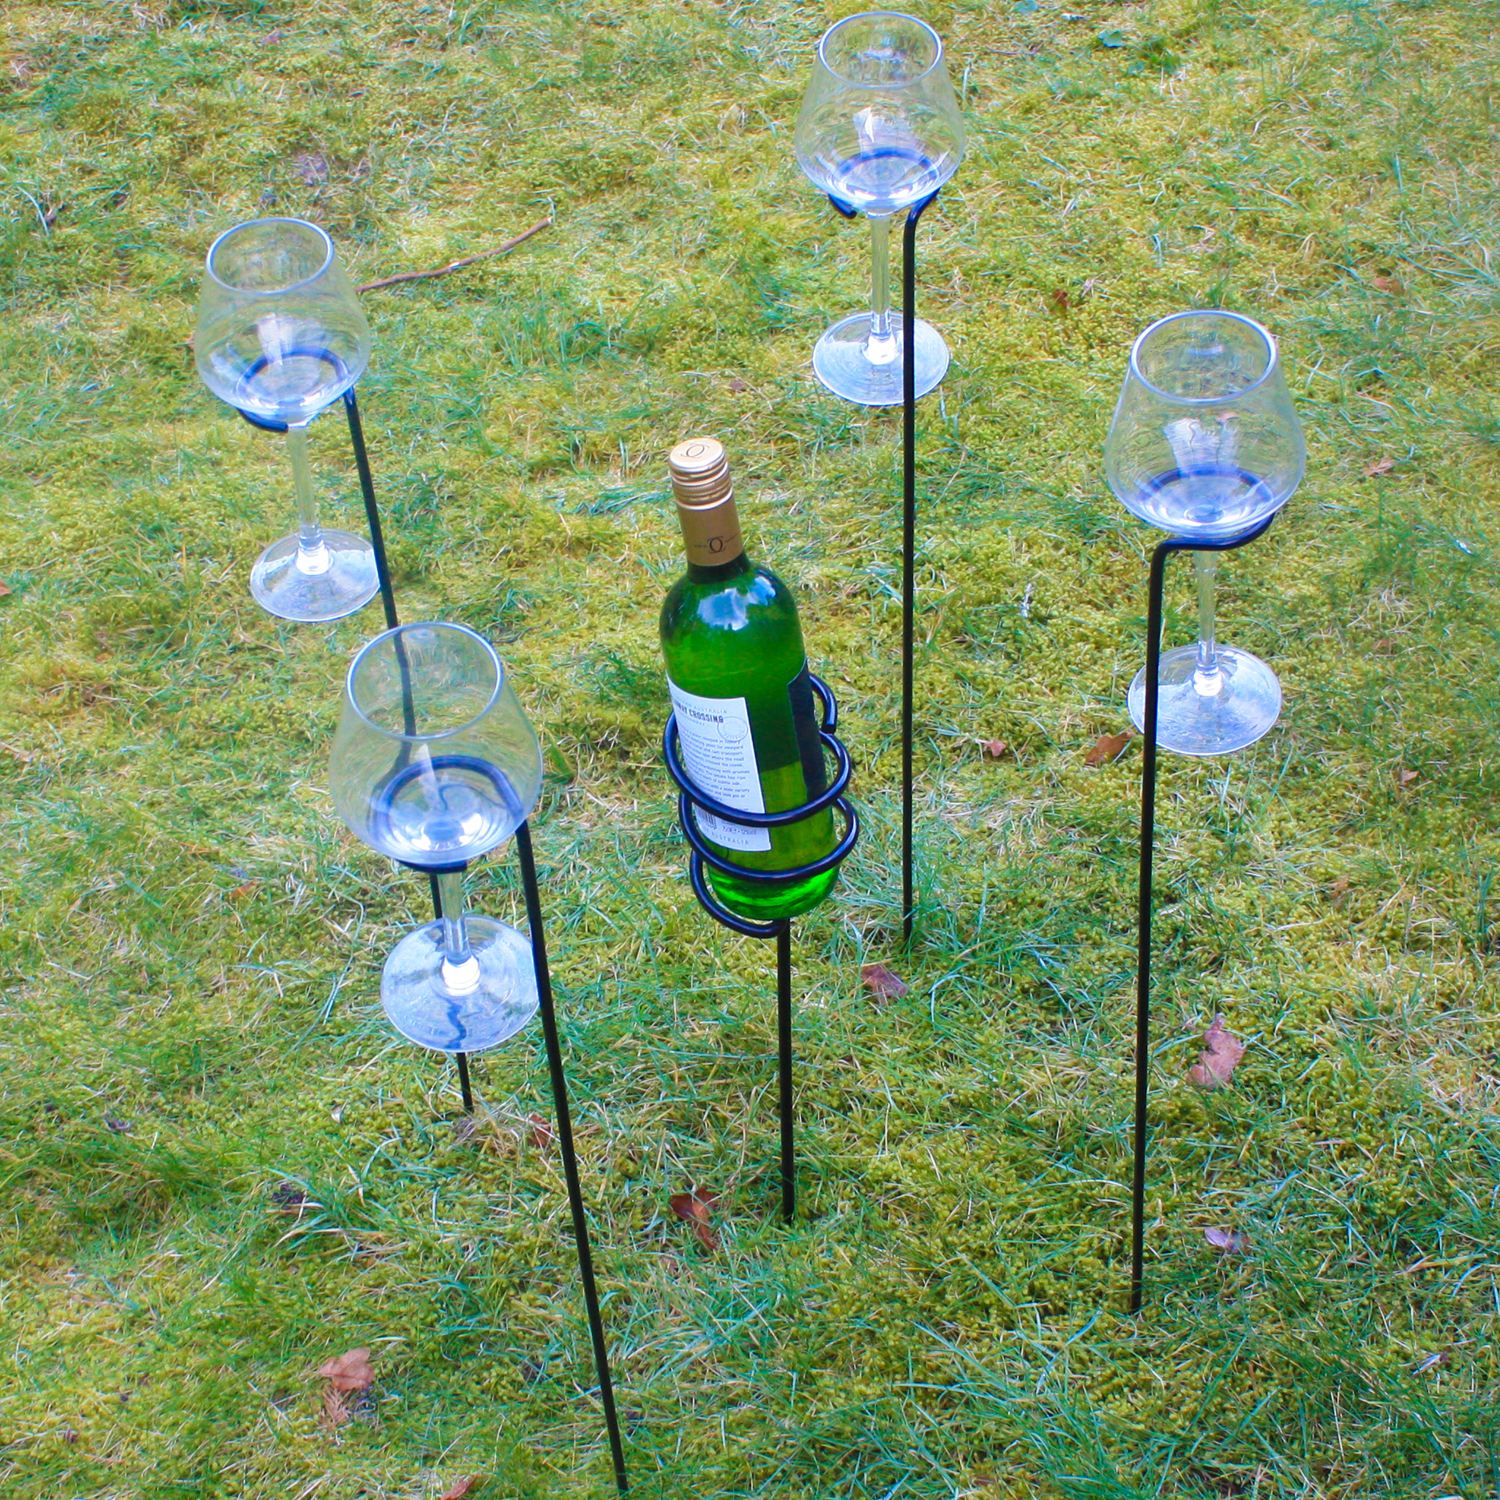 Wine Gl And Bottle Holder Stake Set For Outdoor Bbq S Garden